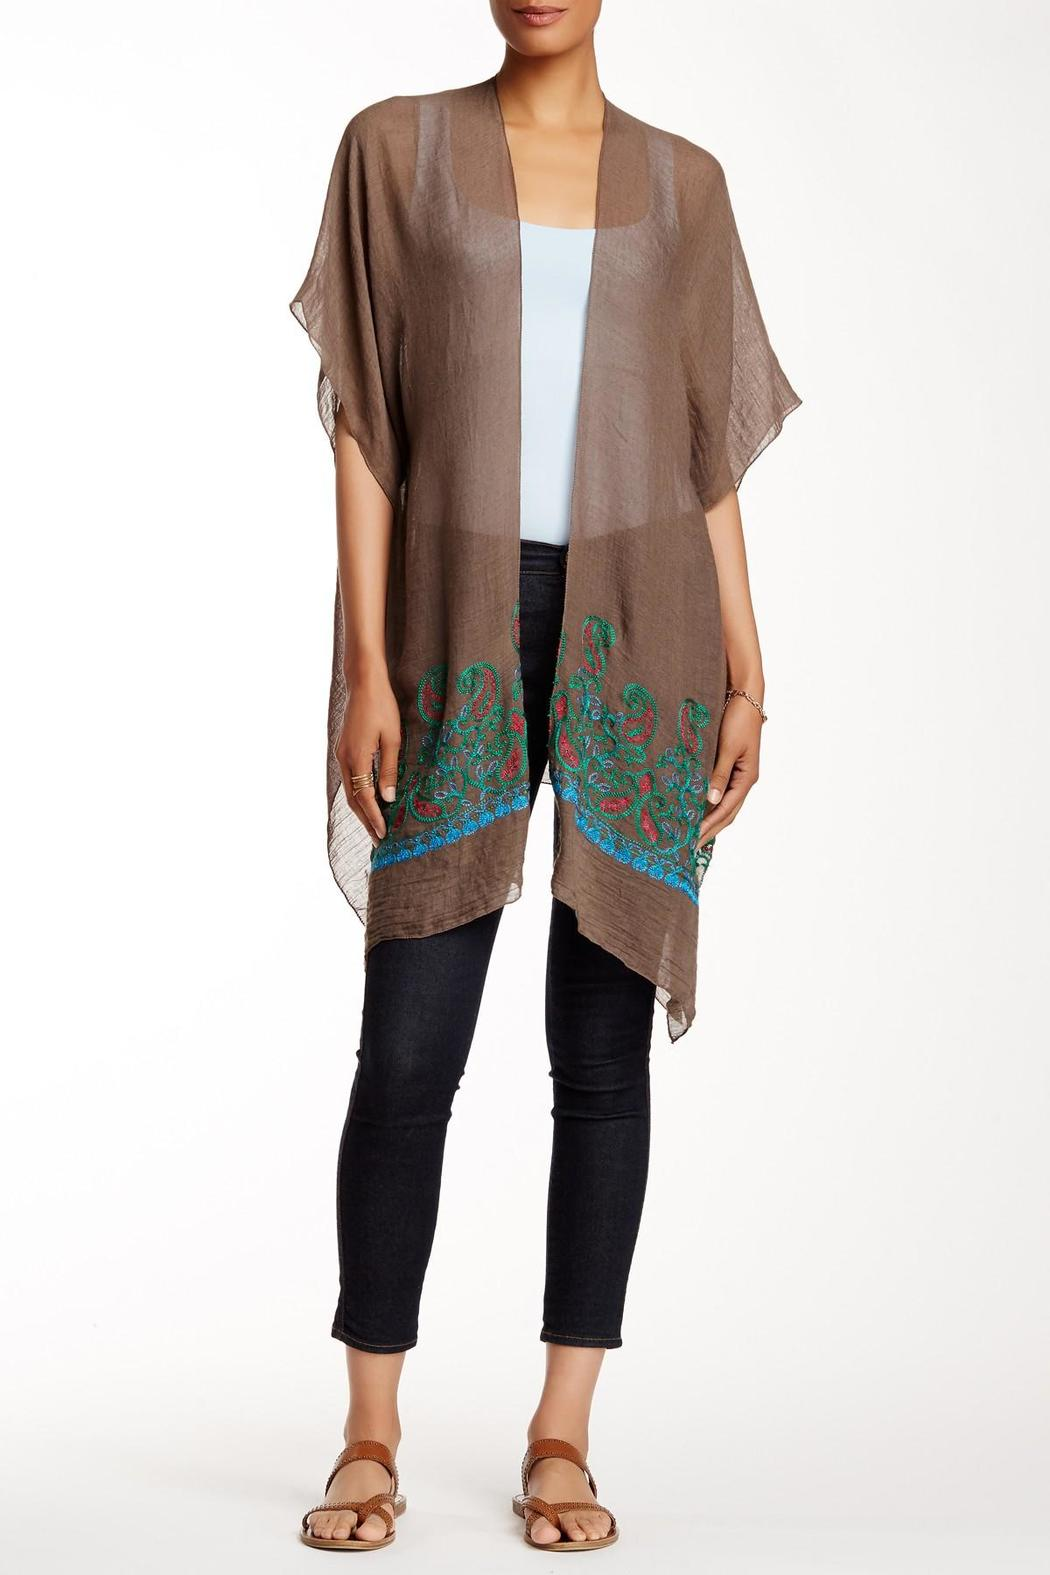 Rikka Sheer Brown Long Cardigan - Main Image